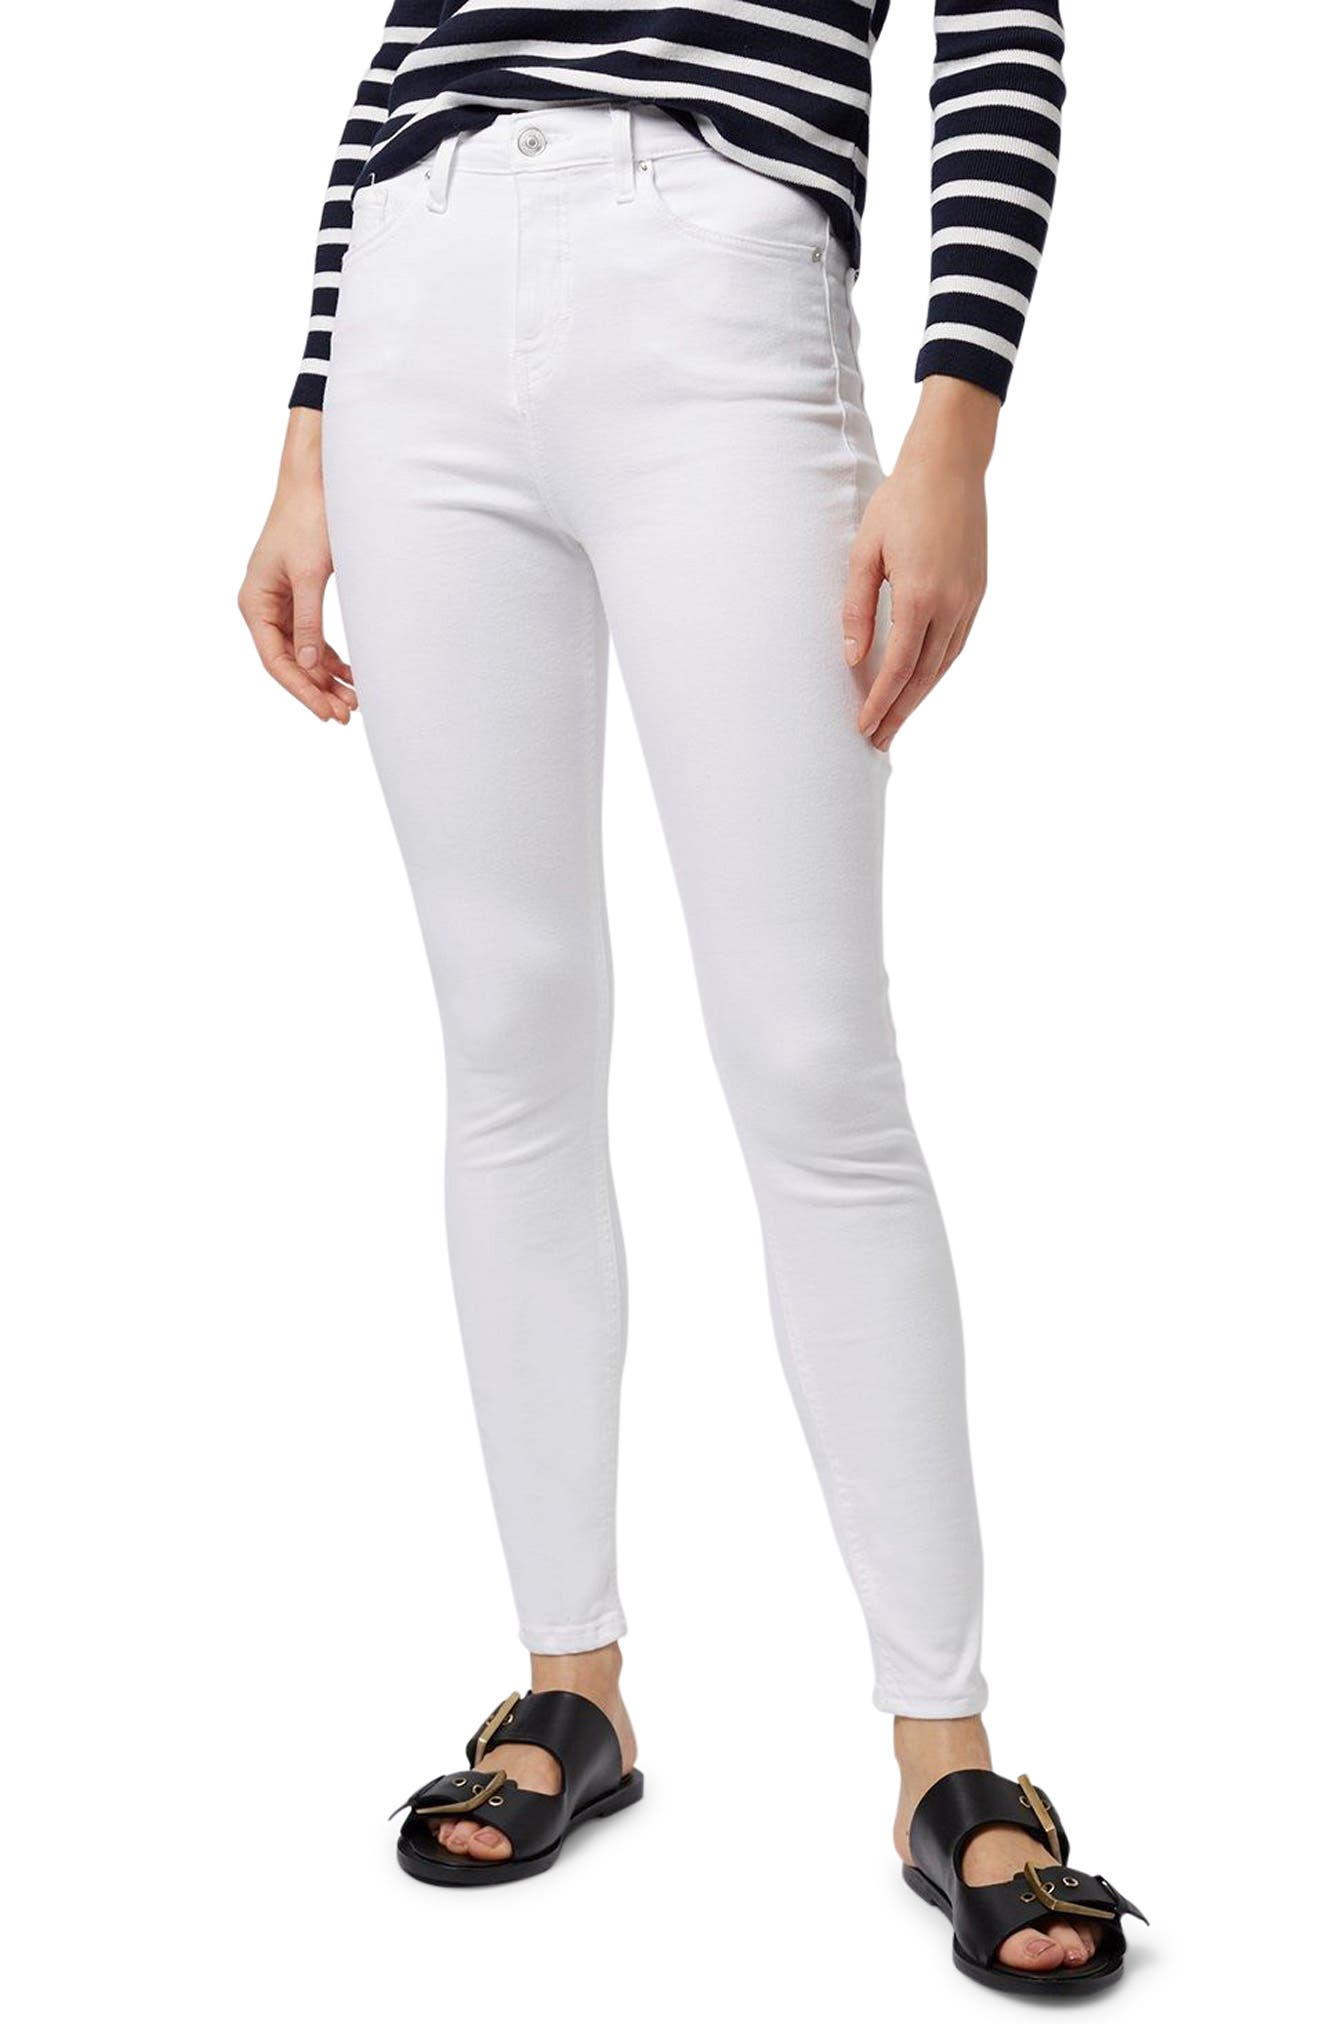 Moto Jamie Jeans,                             Main thumbnail 1, color,                             WHITE